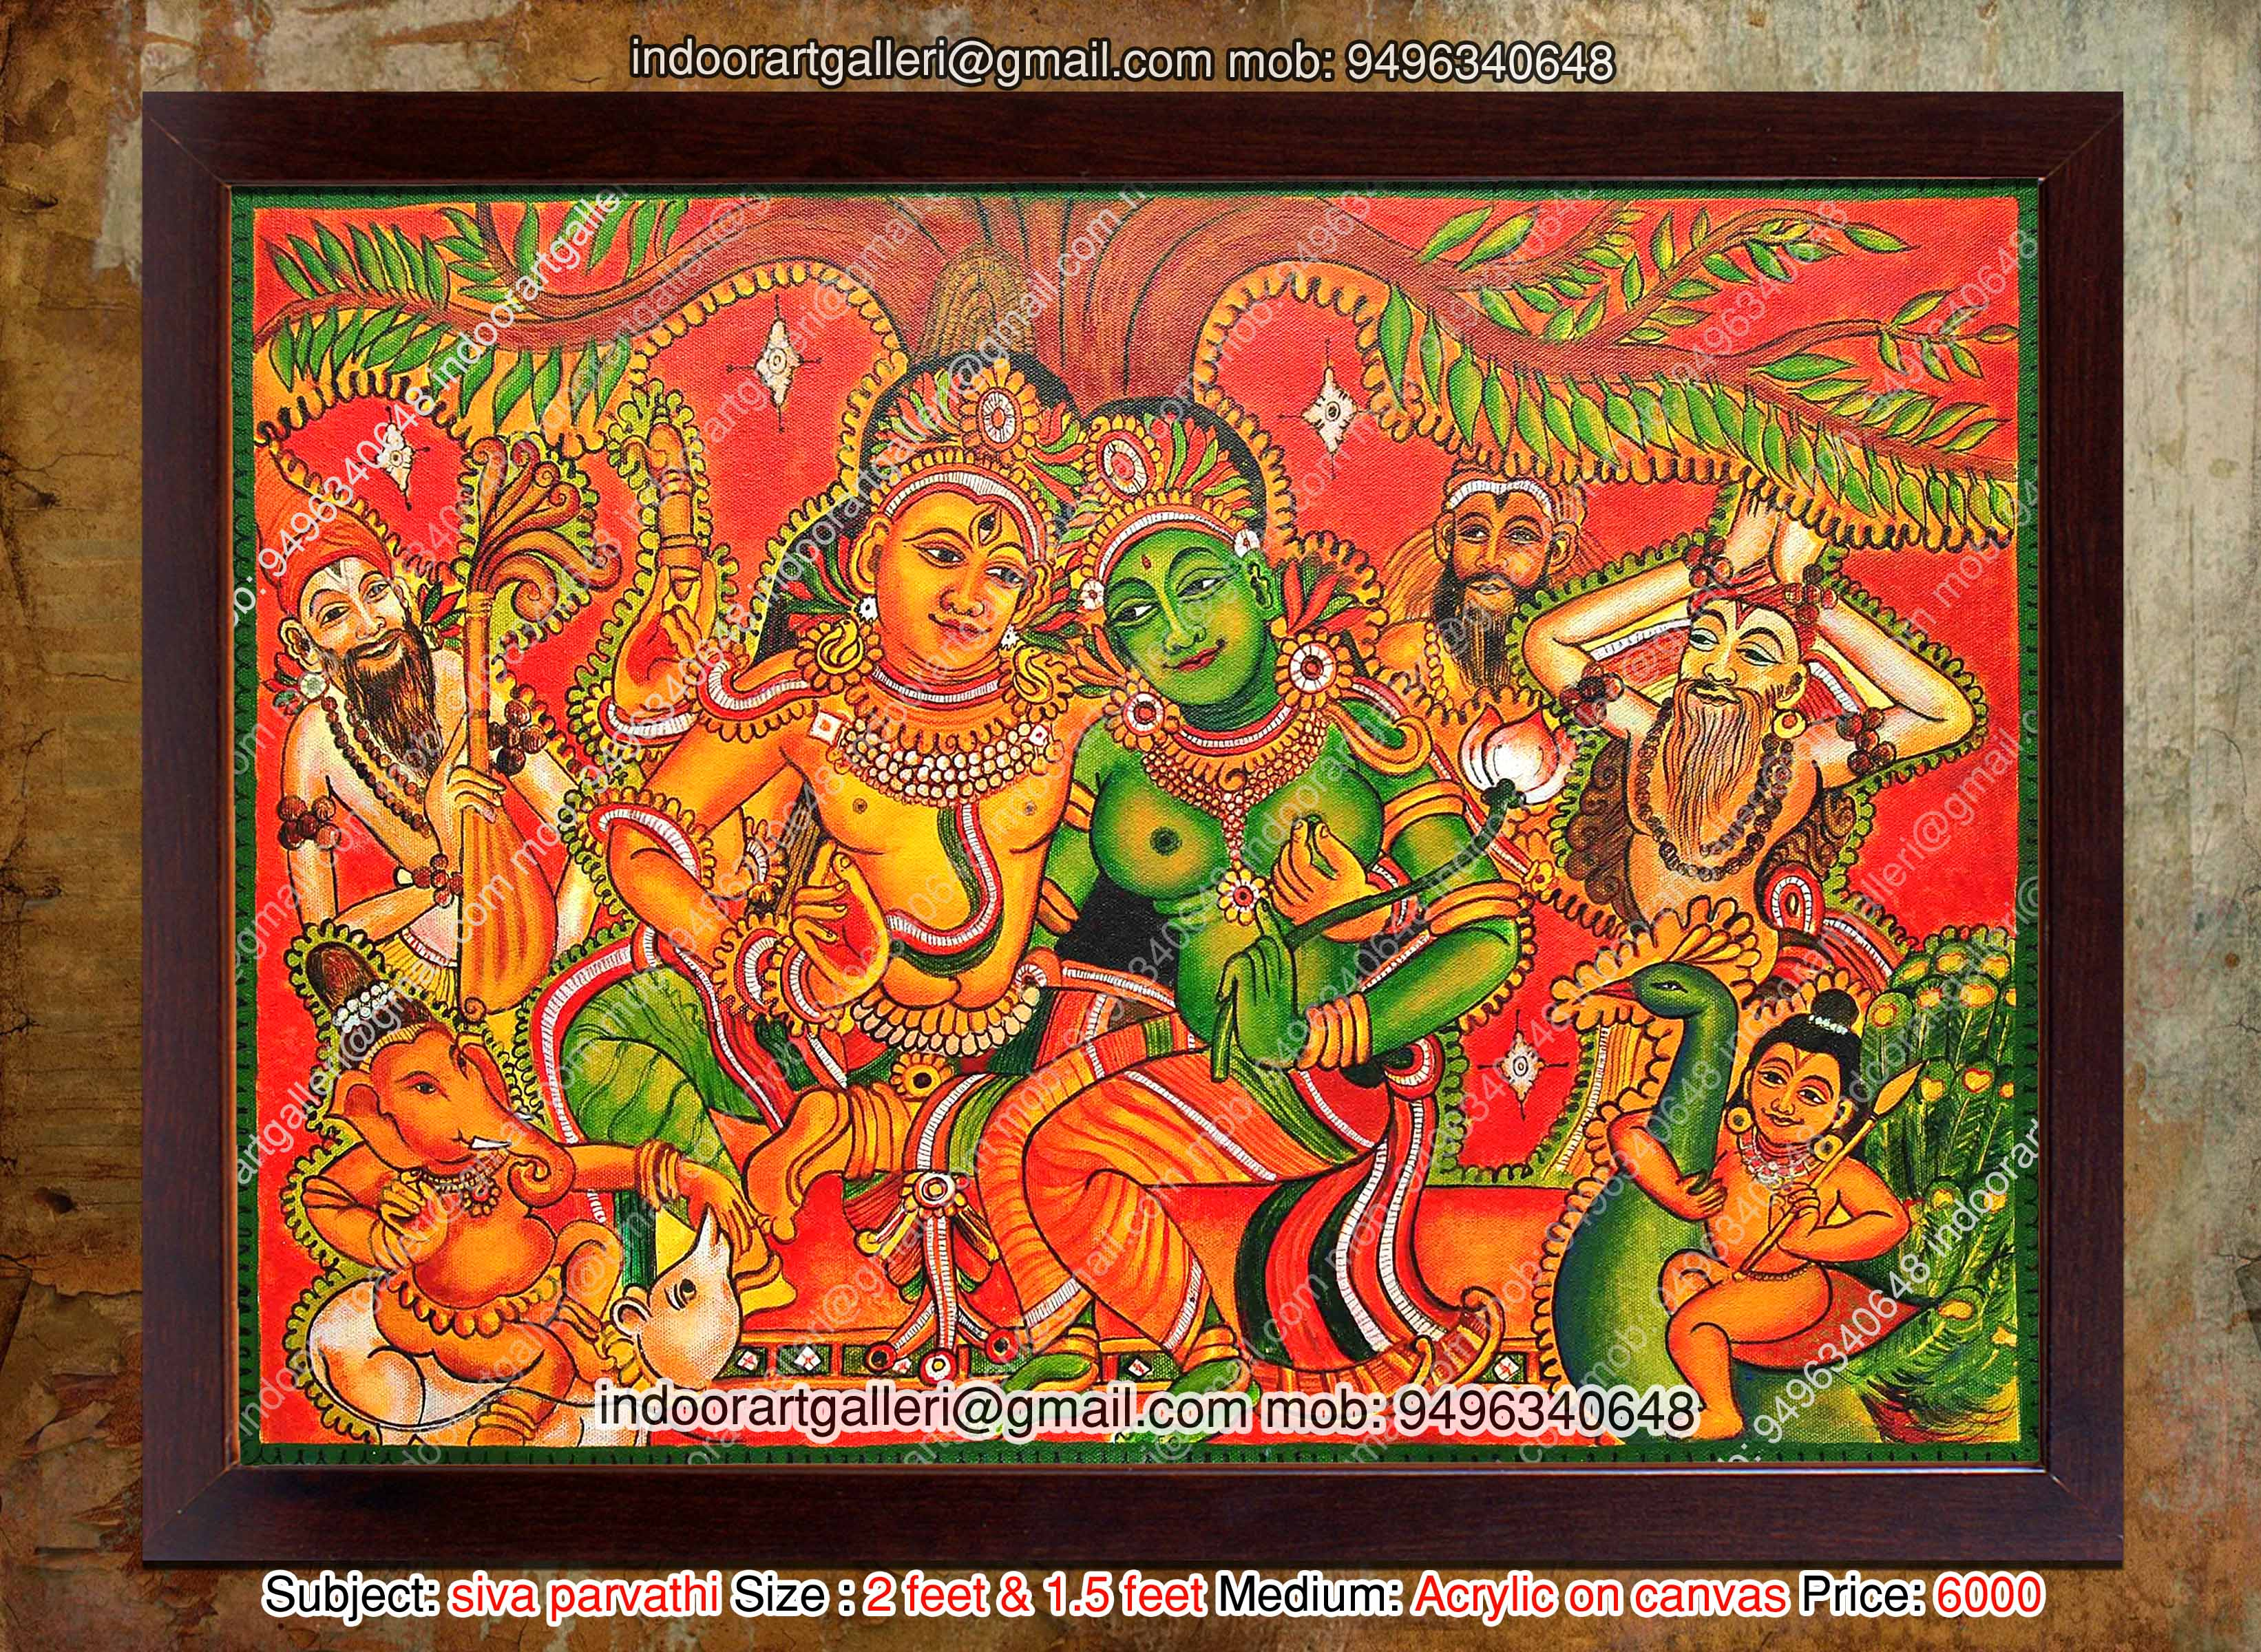 Siva parvathi mural painting by indoorartgalleri on deviantart for Call for mural artists 2014